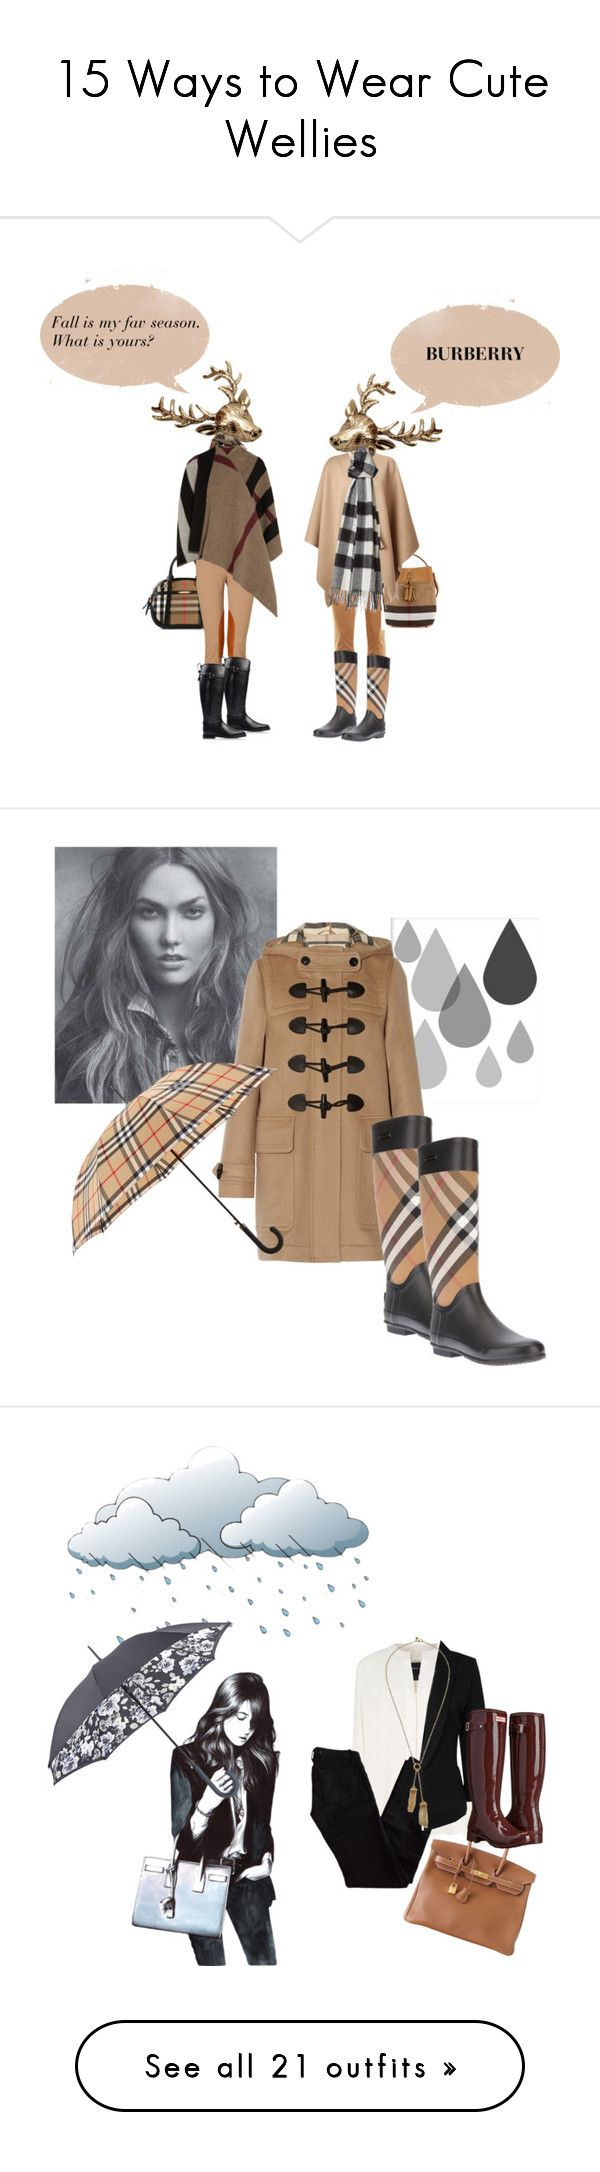 """15 Ways to Wear Cute Wellies"" by polyvore-editorial ❤ liked on Polyvore featuring rainboots, Wellies, waystowear, J Brand, Burberry, Michael Kors, Wildfox, shoes, boots and black rain boots"